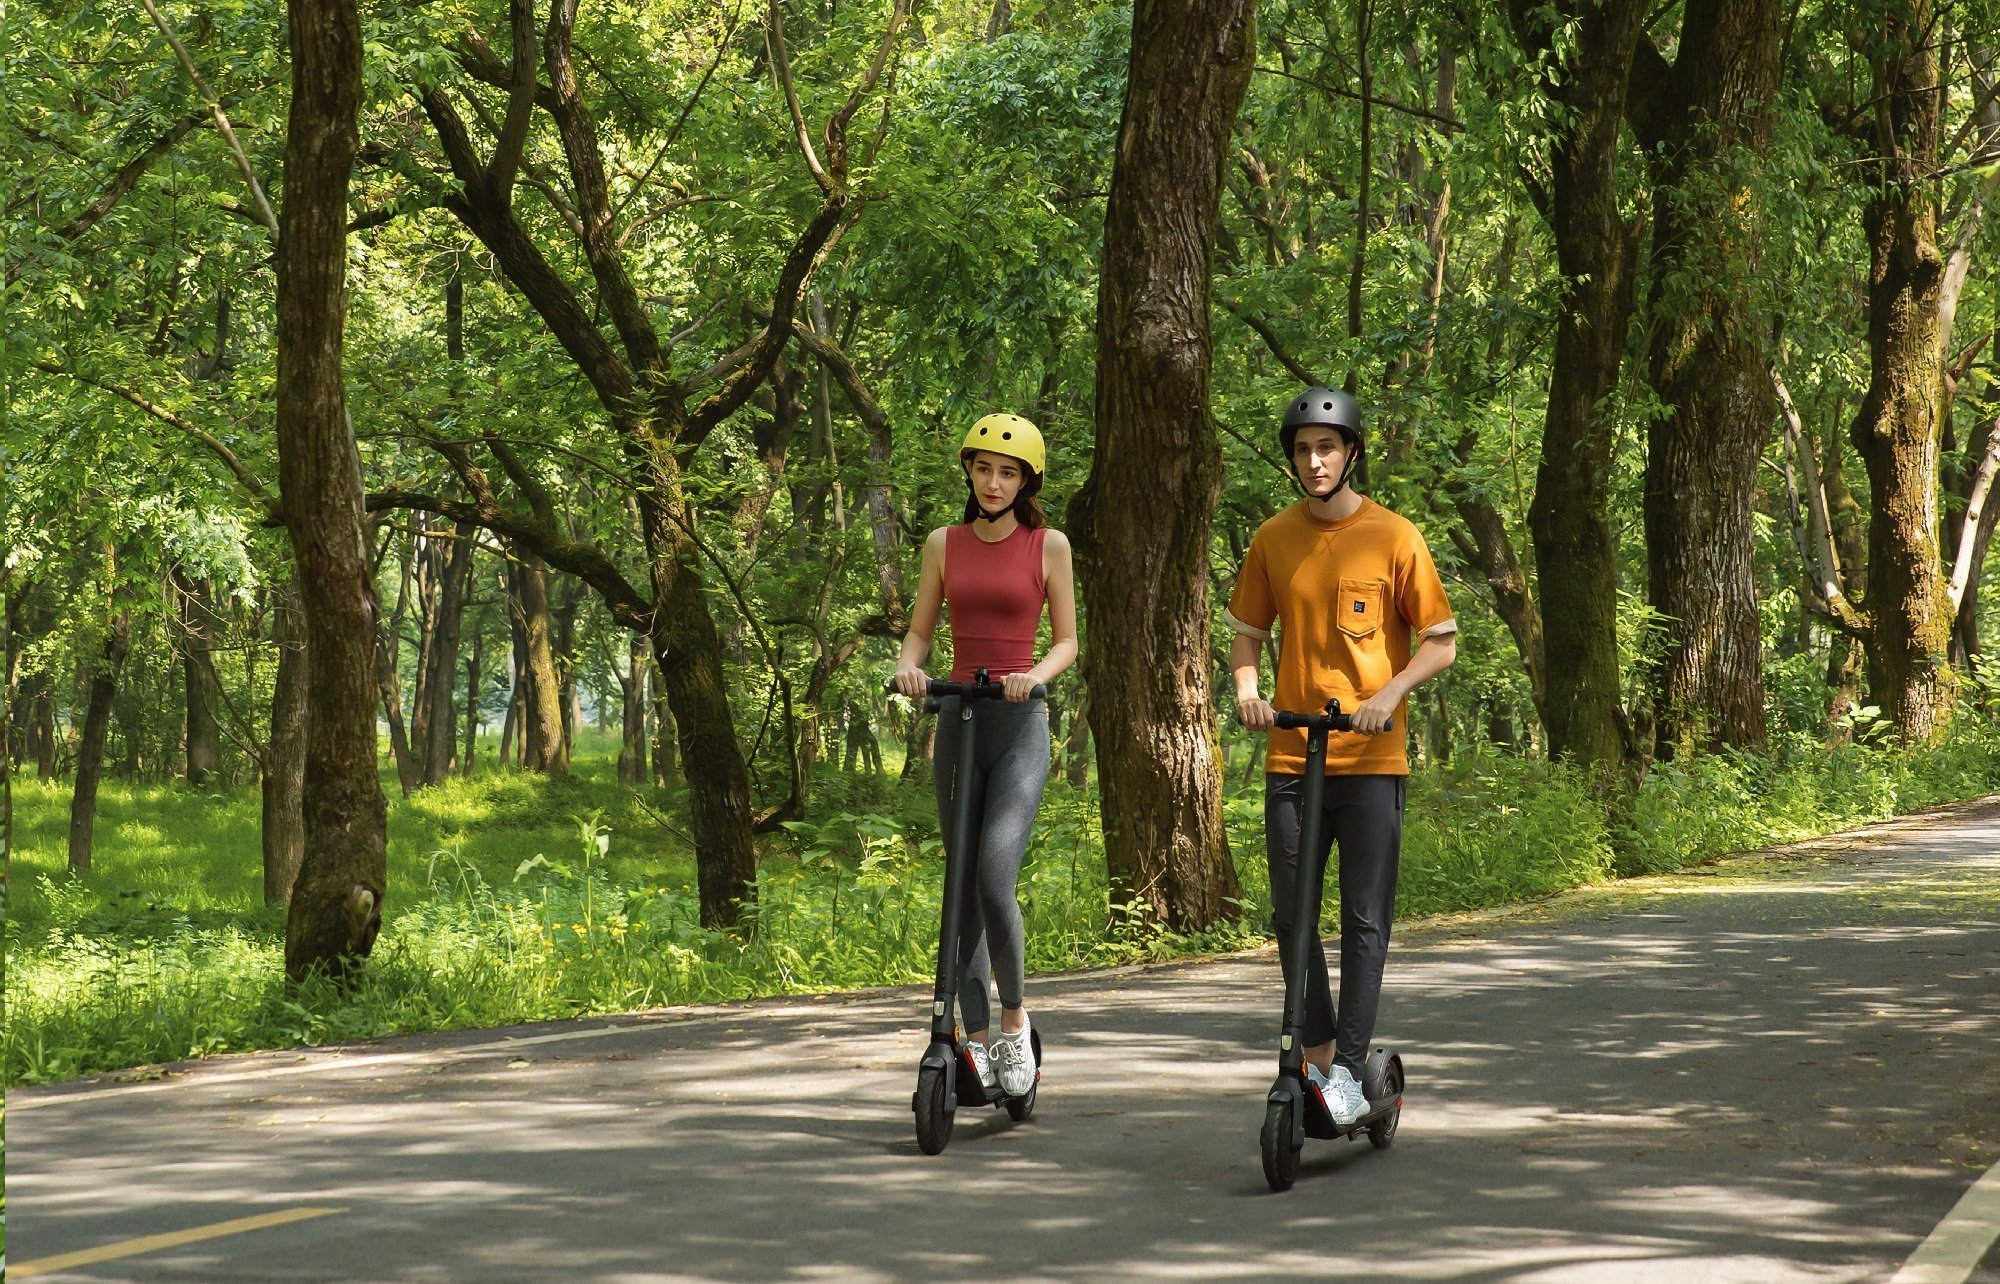 Segway Ninebot E25E Electric Scooter   Expert Opinion 3